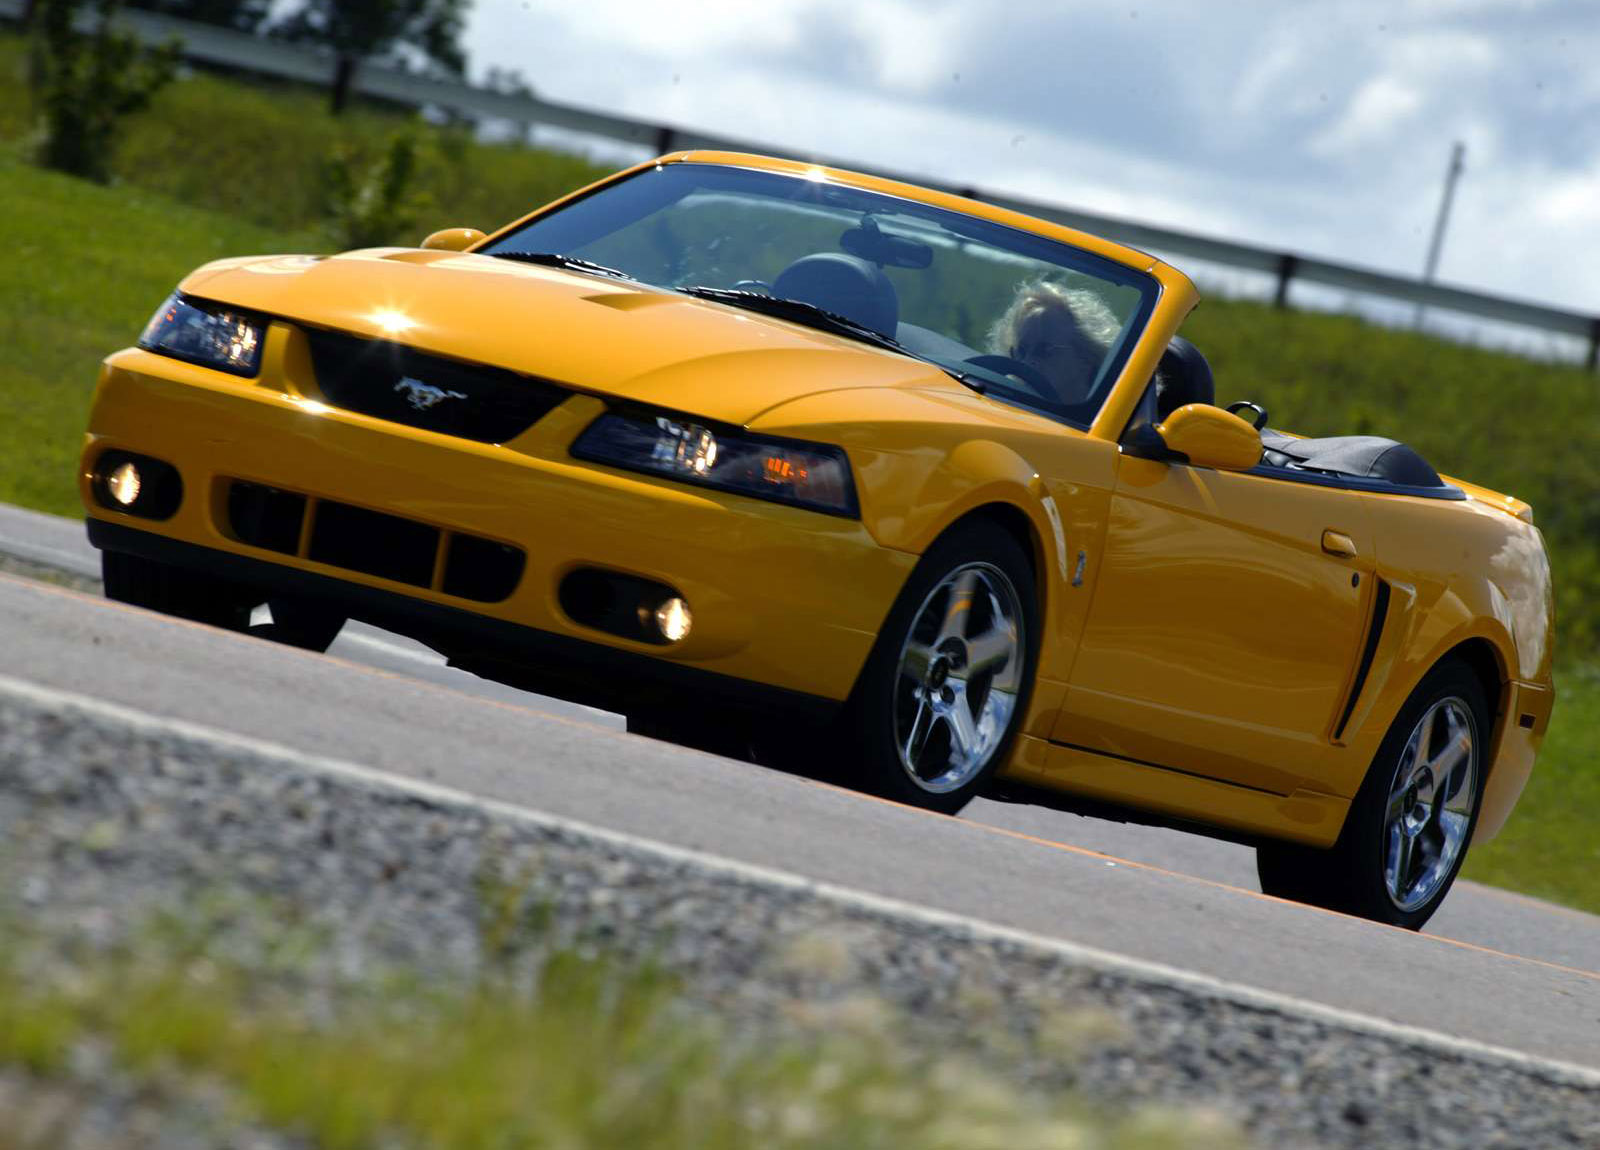 Ford Mustang Gt Convertible 2017 >> 2004 Ford Mustang SVT Cobra Convertible - HD Pictures @ carsinvasion.com